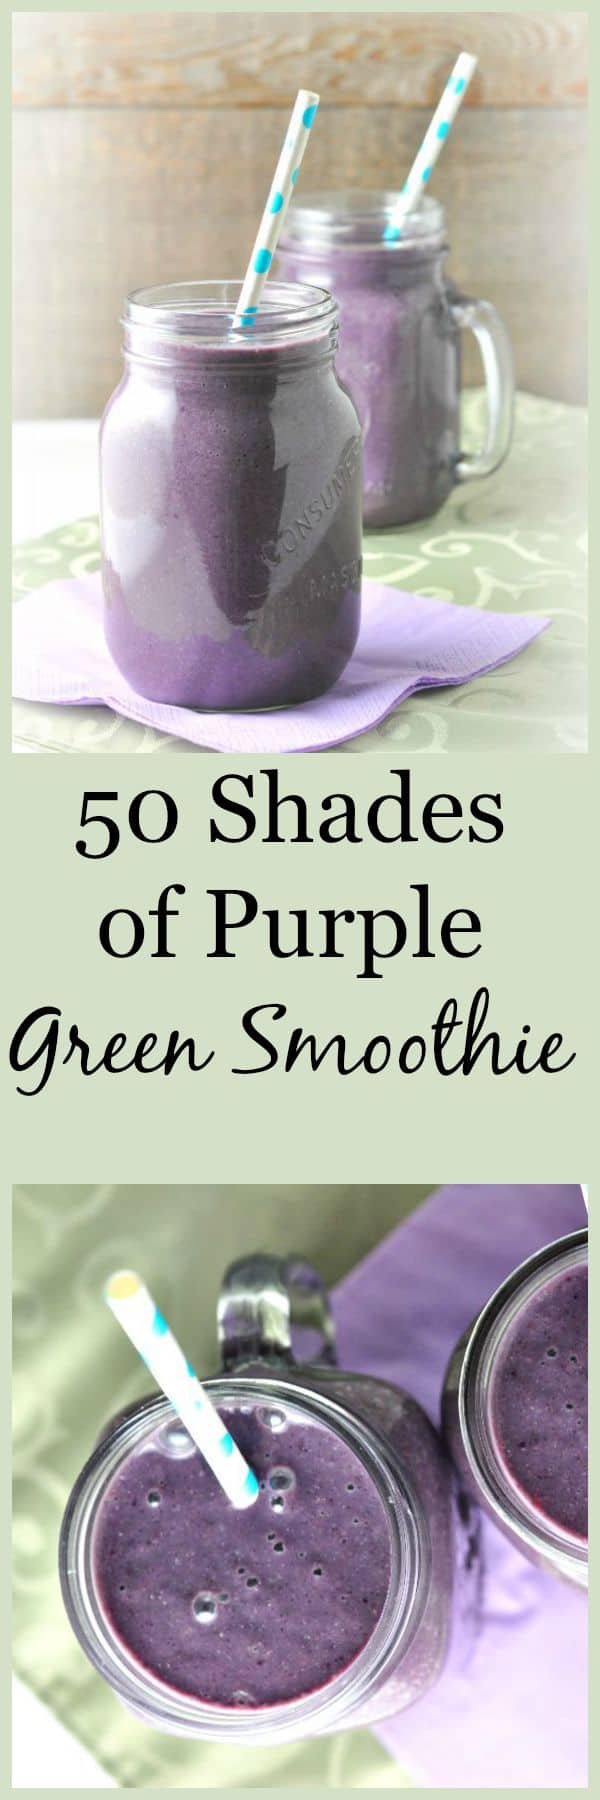 50 Shades of Purple green smoothie. You won't believe it's a green smoothie! |from Flavour and Savour